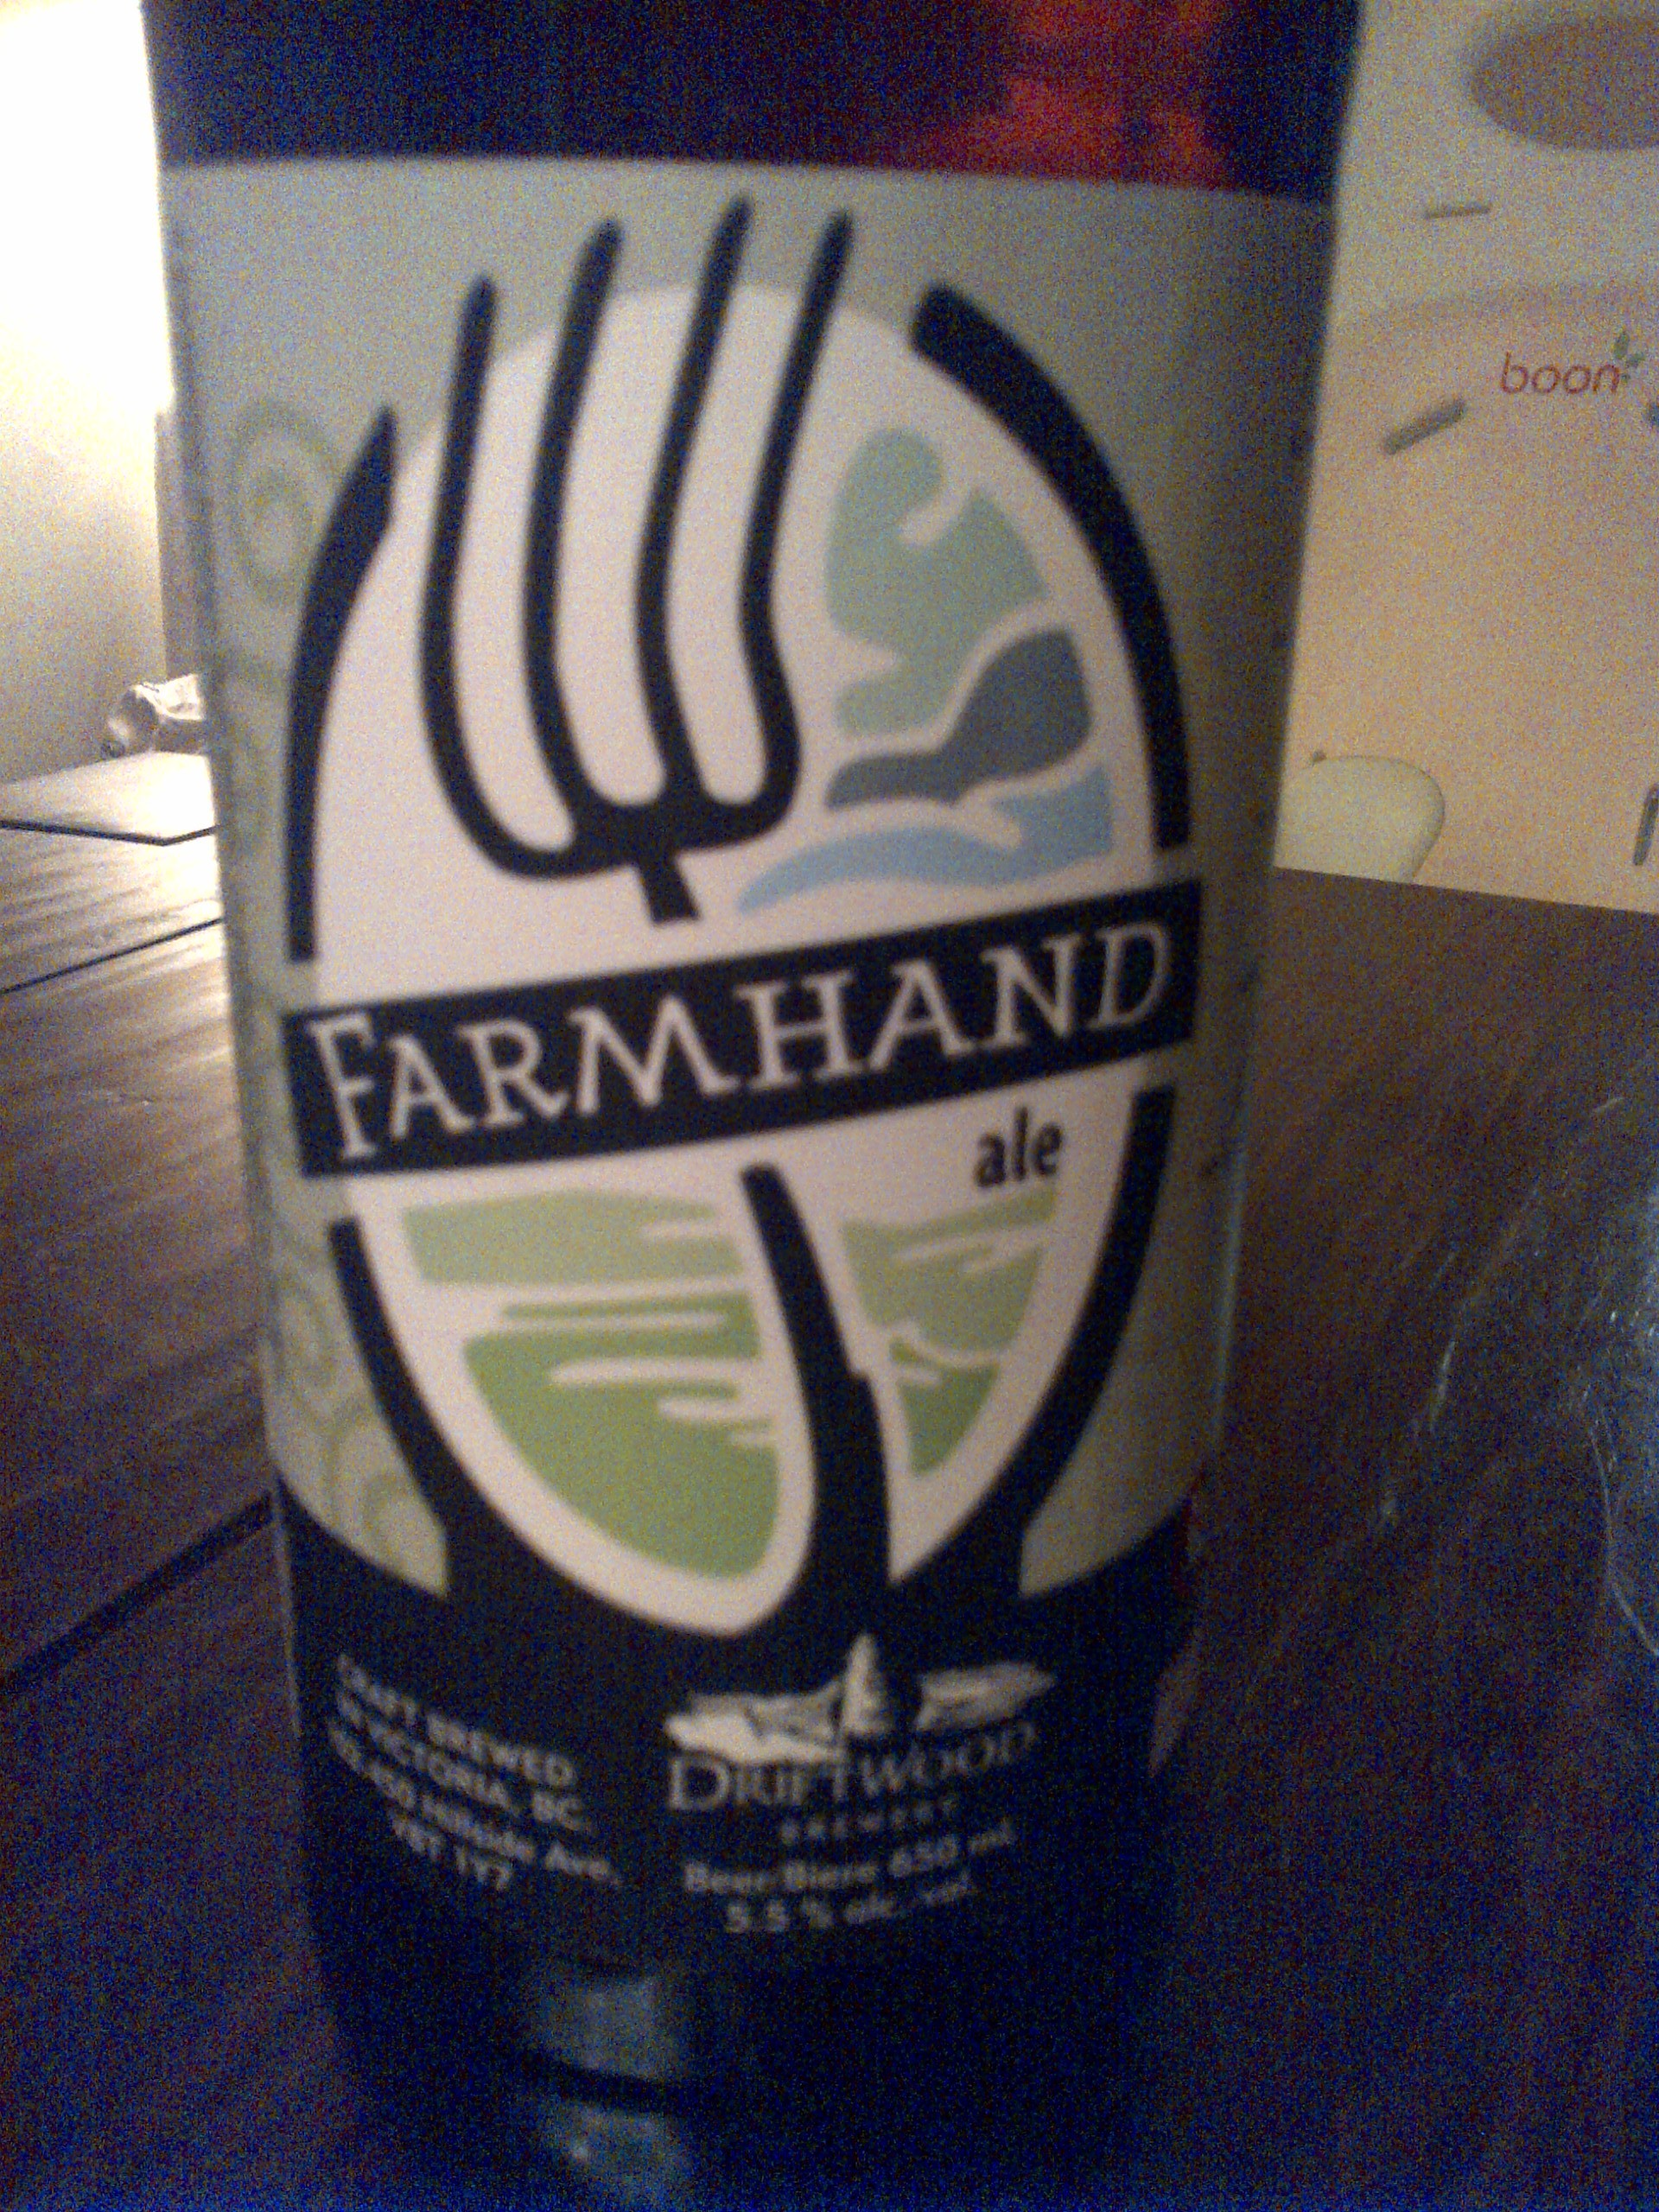 Driftwood Brewery's Farmhand Ale for a farmhand